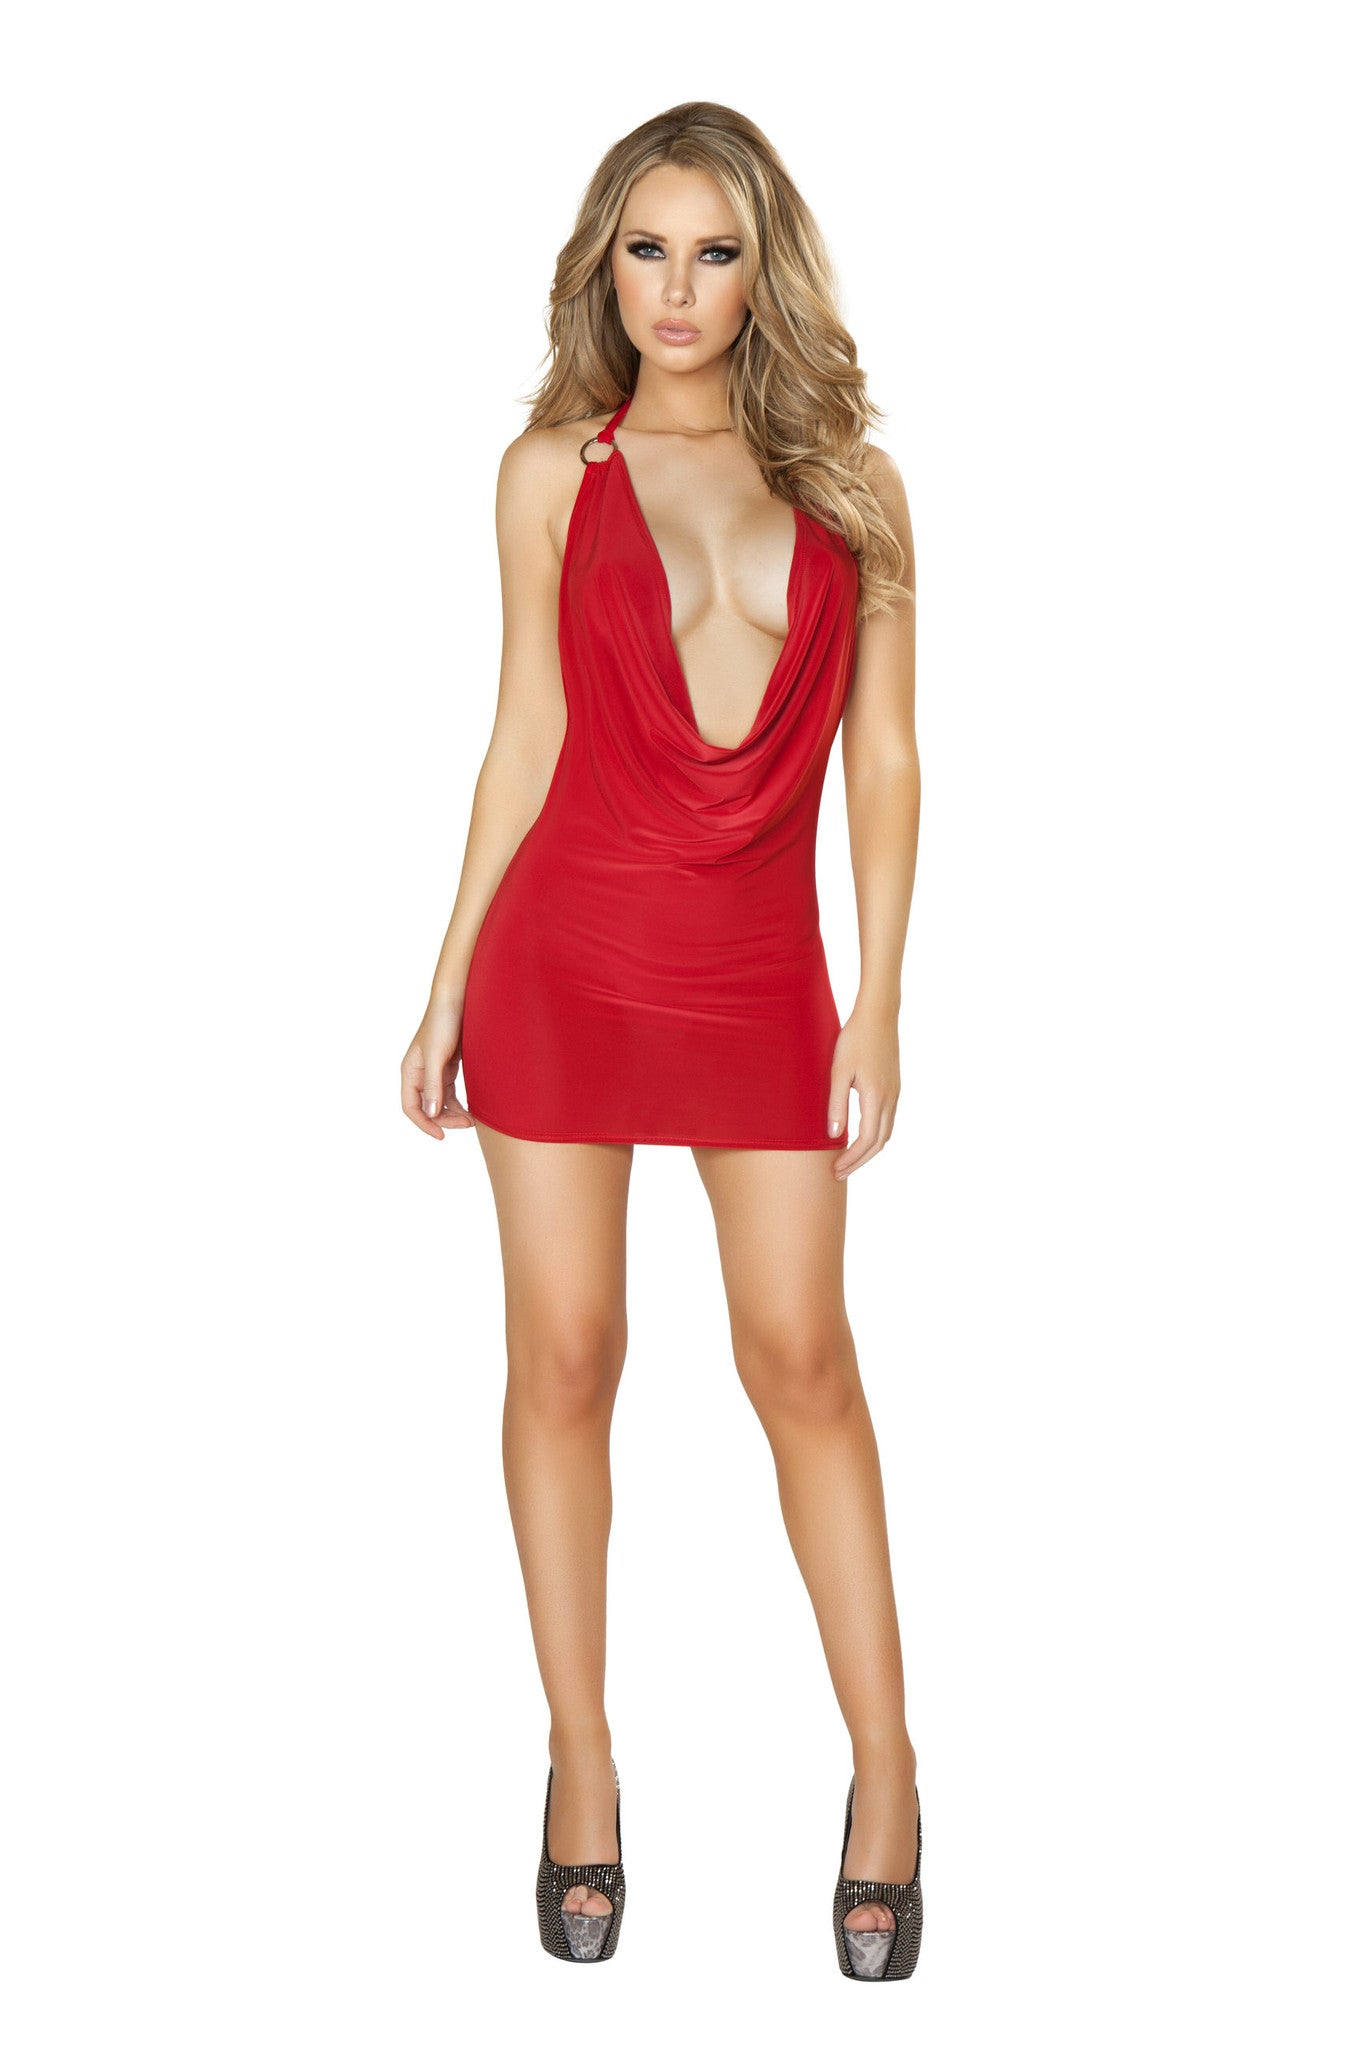 3131 - 1pc Cowl Neck Red Mini Dress ${description} | Roma Costume and Roma Confidential wholesale manufacturer of Women Apparel bulk world wide wholesale and world wide drop ship services for Adult Halloween Costumes, Sexy and Elegant Lingerie, Rave Clothing, Club wear, and Christmas Costumes. Mini Dresses,New Products, Roma Costume, Inc., Roma Costume, Roma Confidential, Wholesale clothing, drop ship, drop ship service, Wholesale Lingerie, Wholesale Adult Halloween Costumes, Rave Clothing, EDM Clothing, Festival Wear, Christmas Costumes, Clubwear, Club wear.